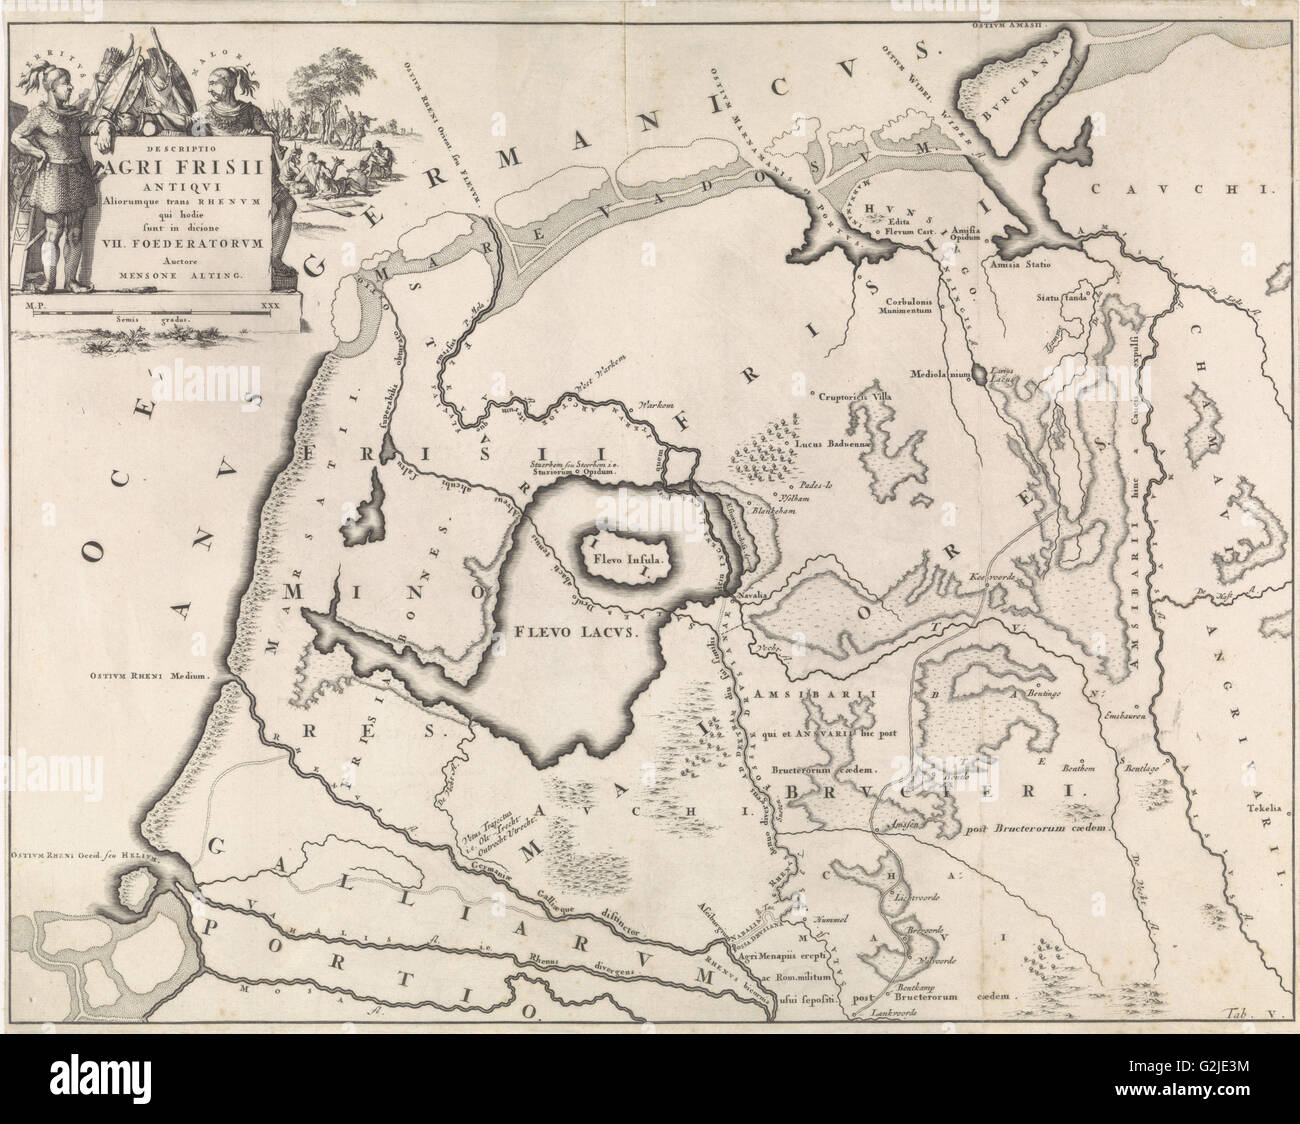 Historical map of Netherlands with the areas of the Batavians and Frisians V, Jan Luyken, Henricus Wetstein, 1697 - Stock Image